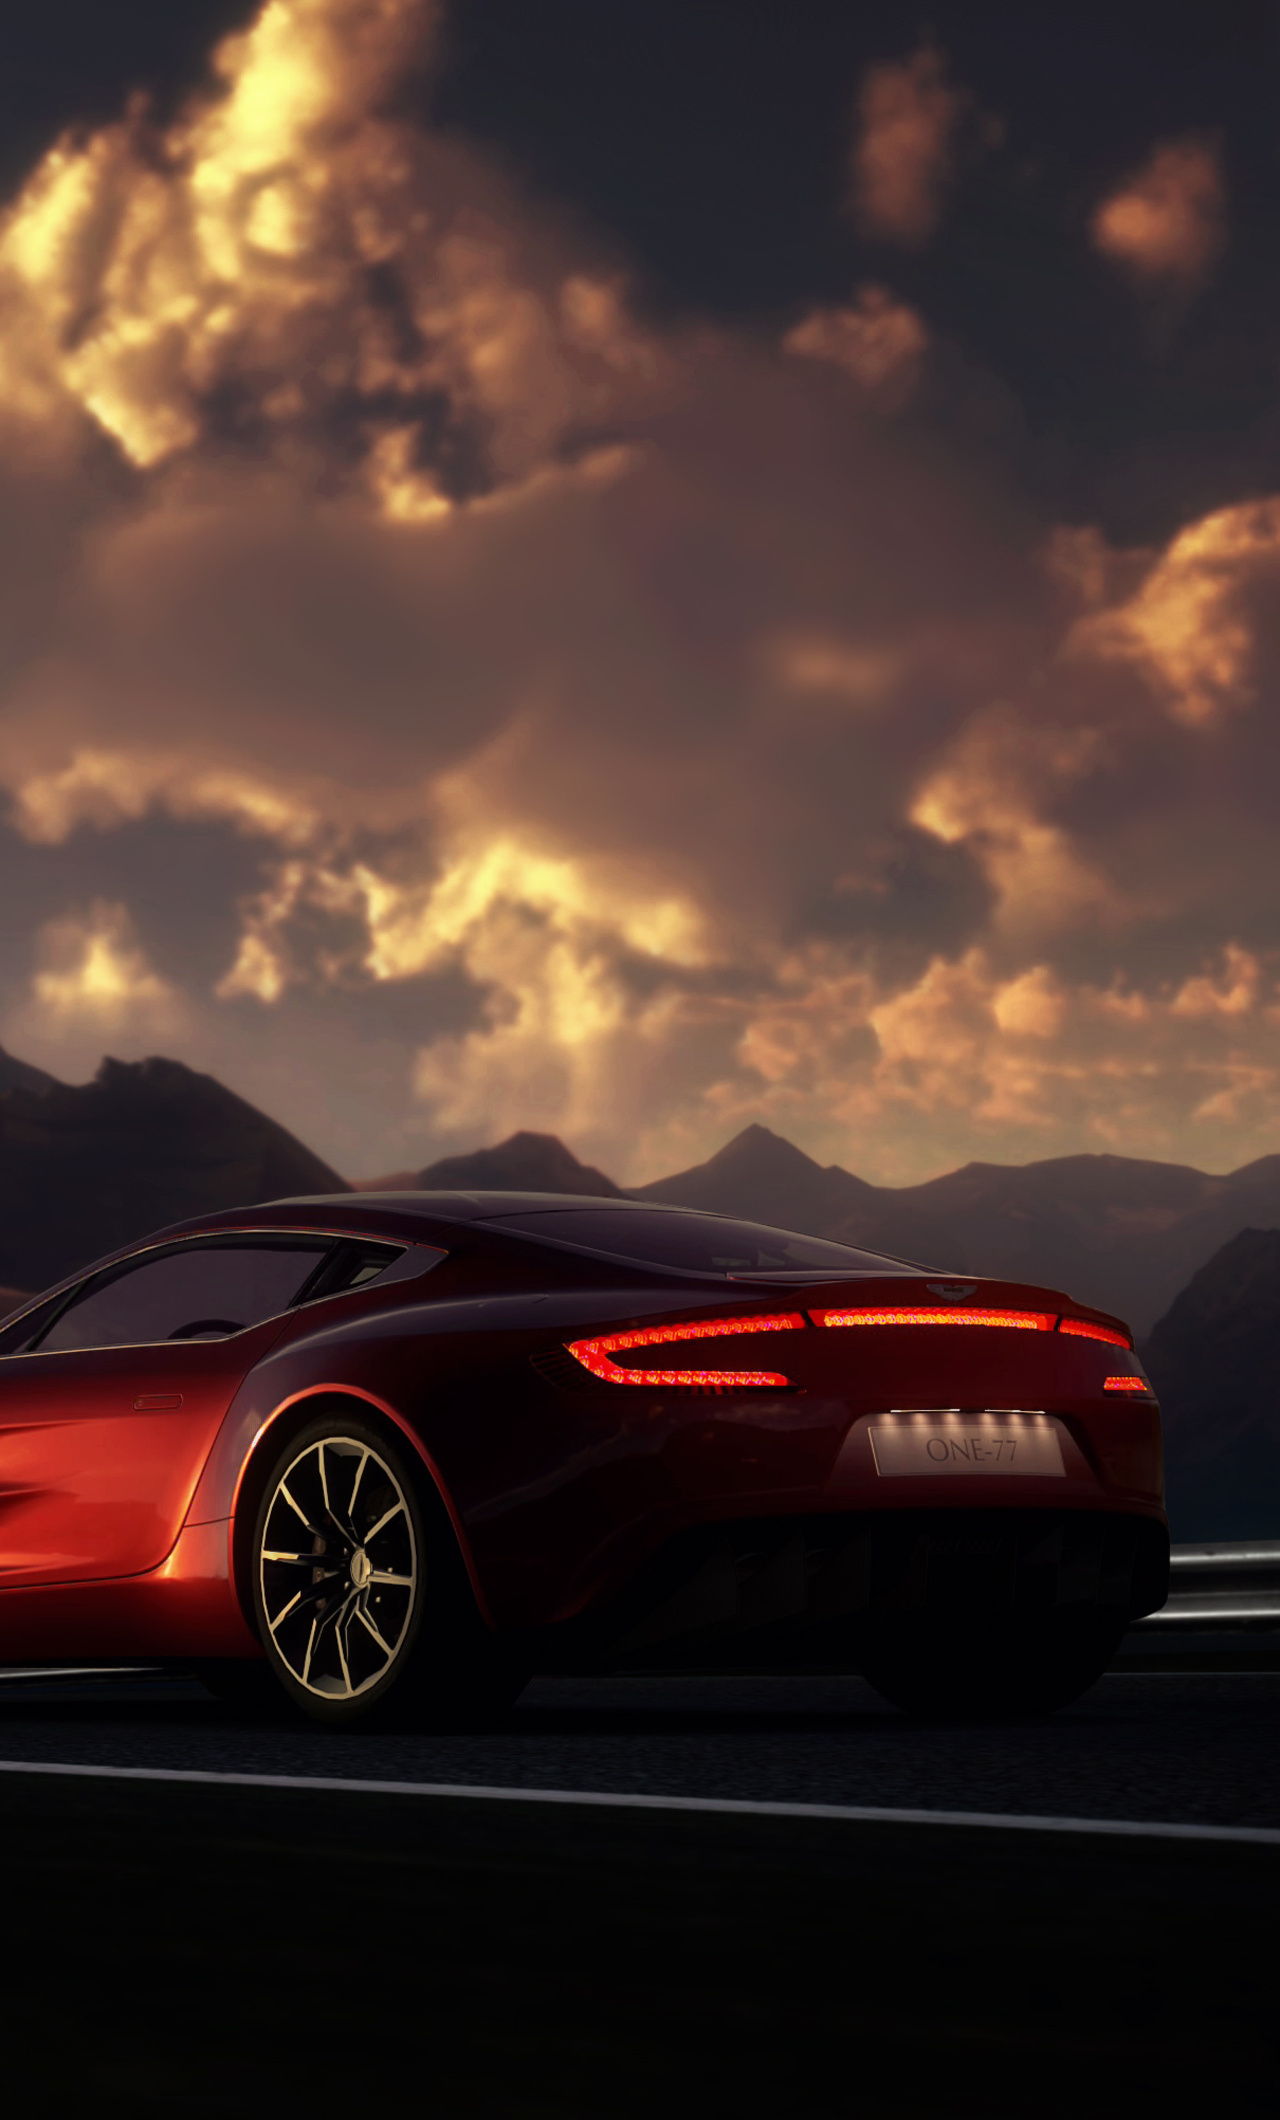 1280x2120 Aston Martin One 77 Gran Turismo 6 Iphone 6 Hd 4k Wallpapers Images Backgrounds Photos And Pictures